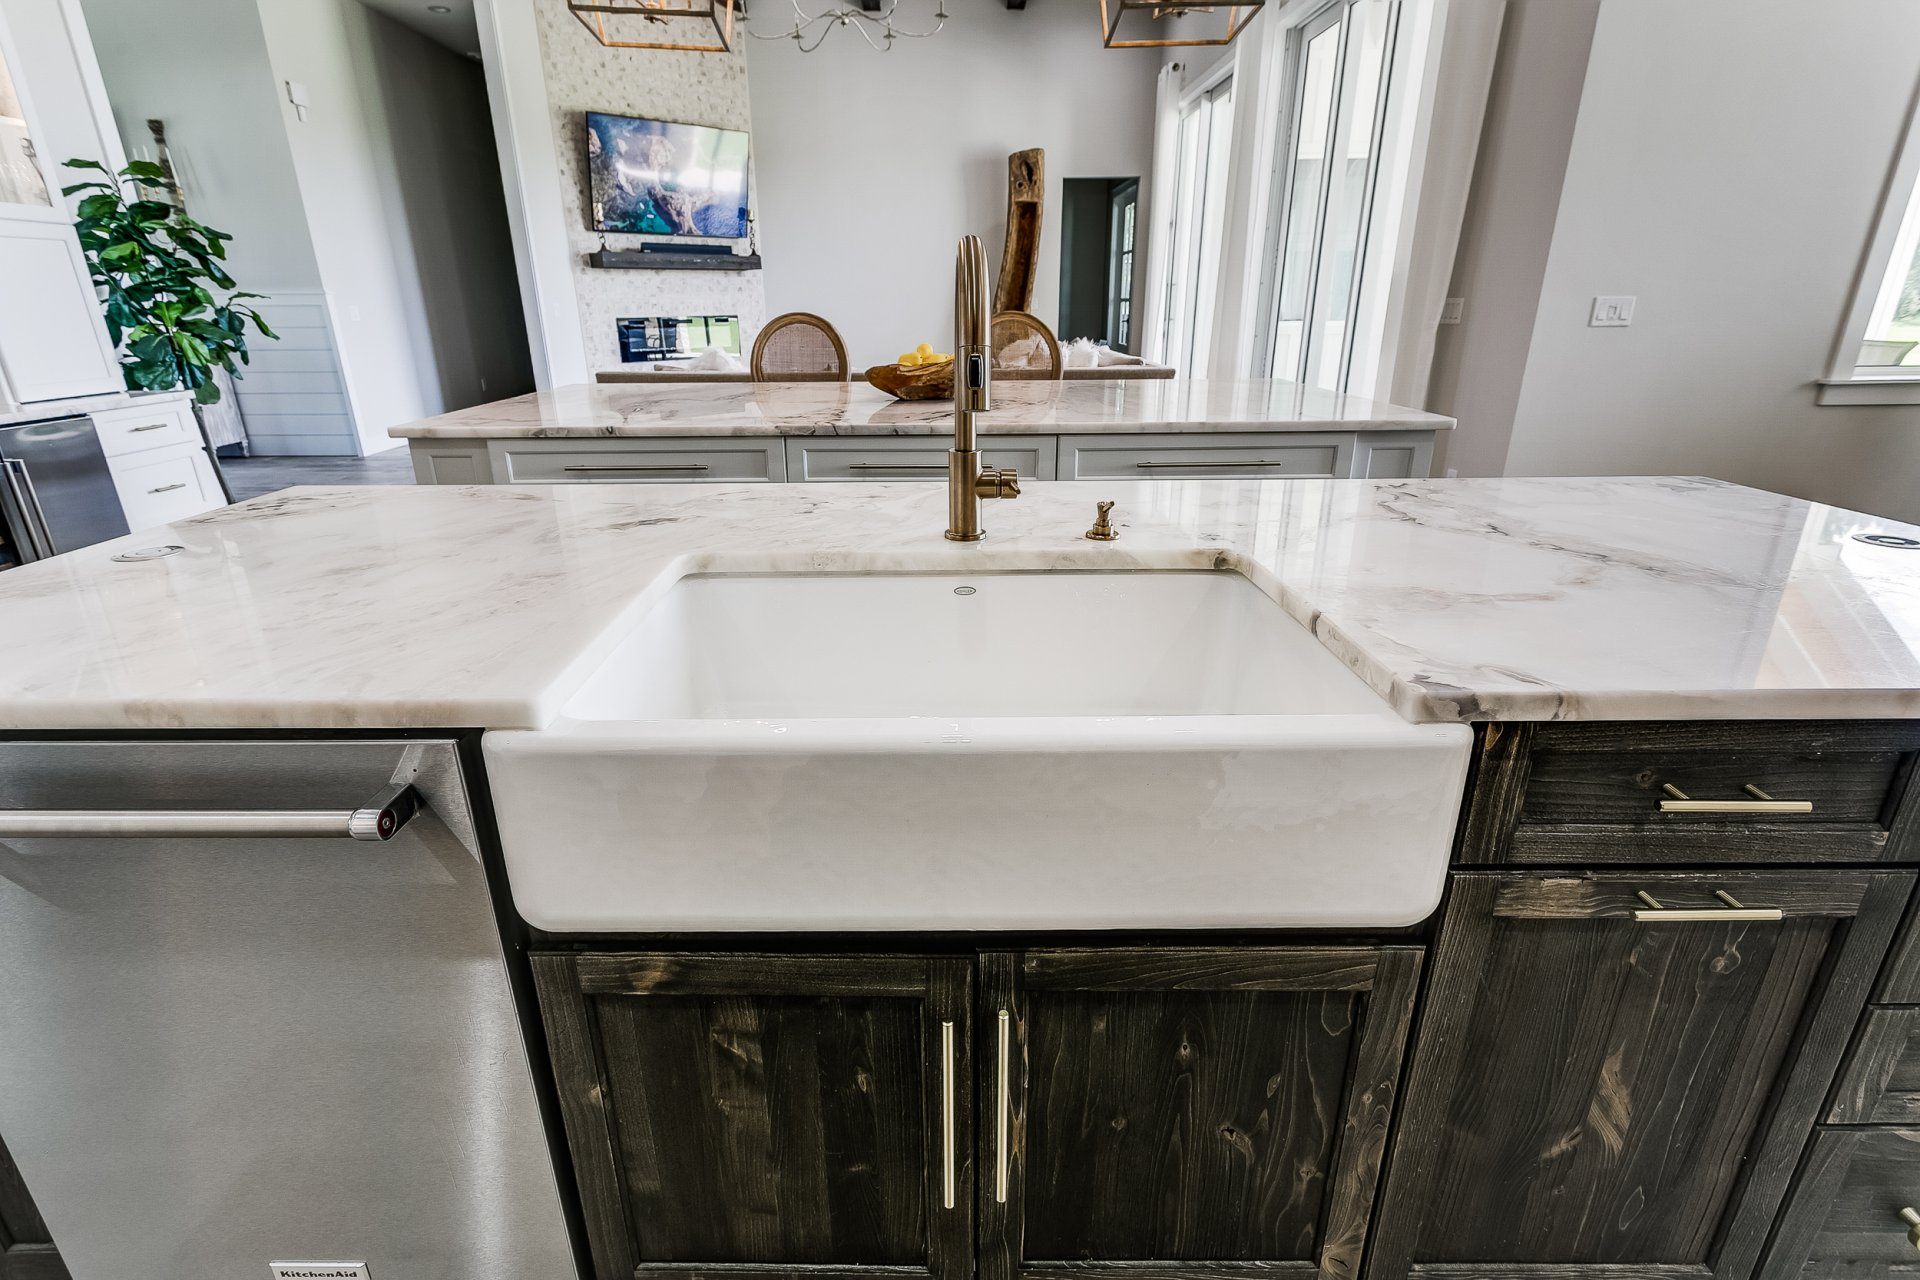 Large farmhouse sink in center kitchen island